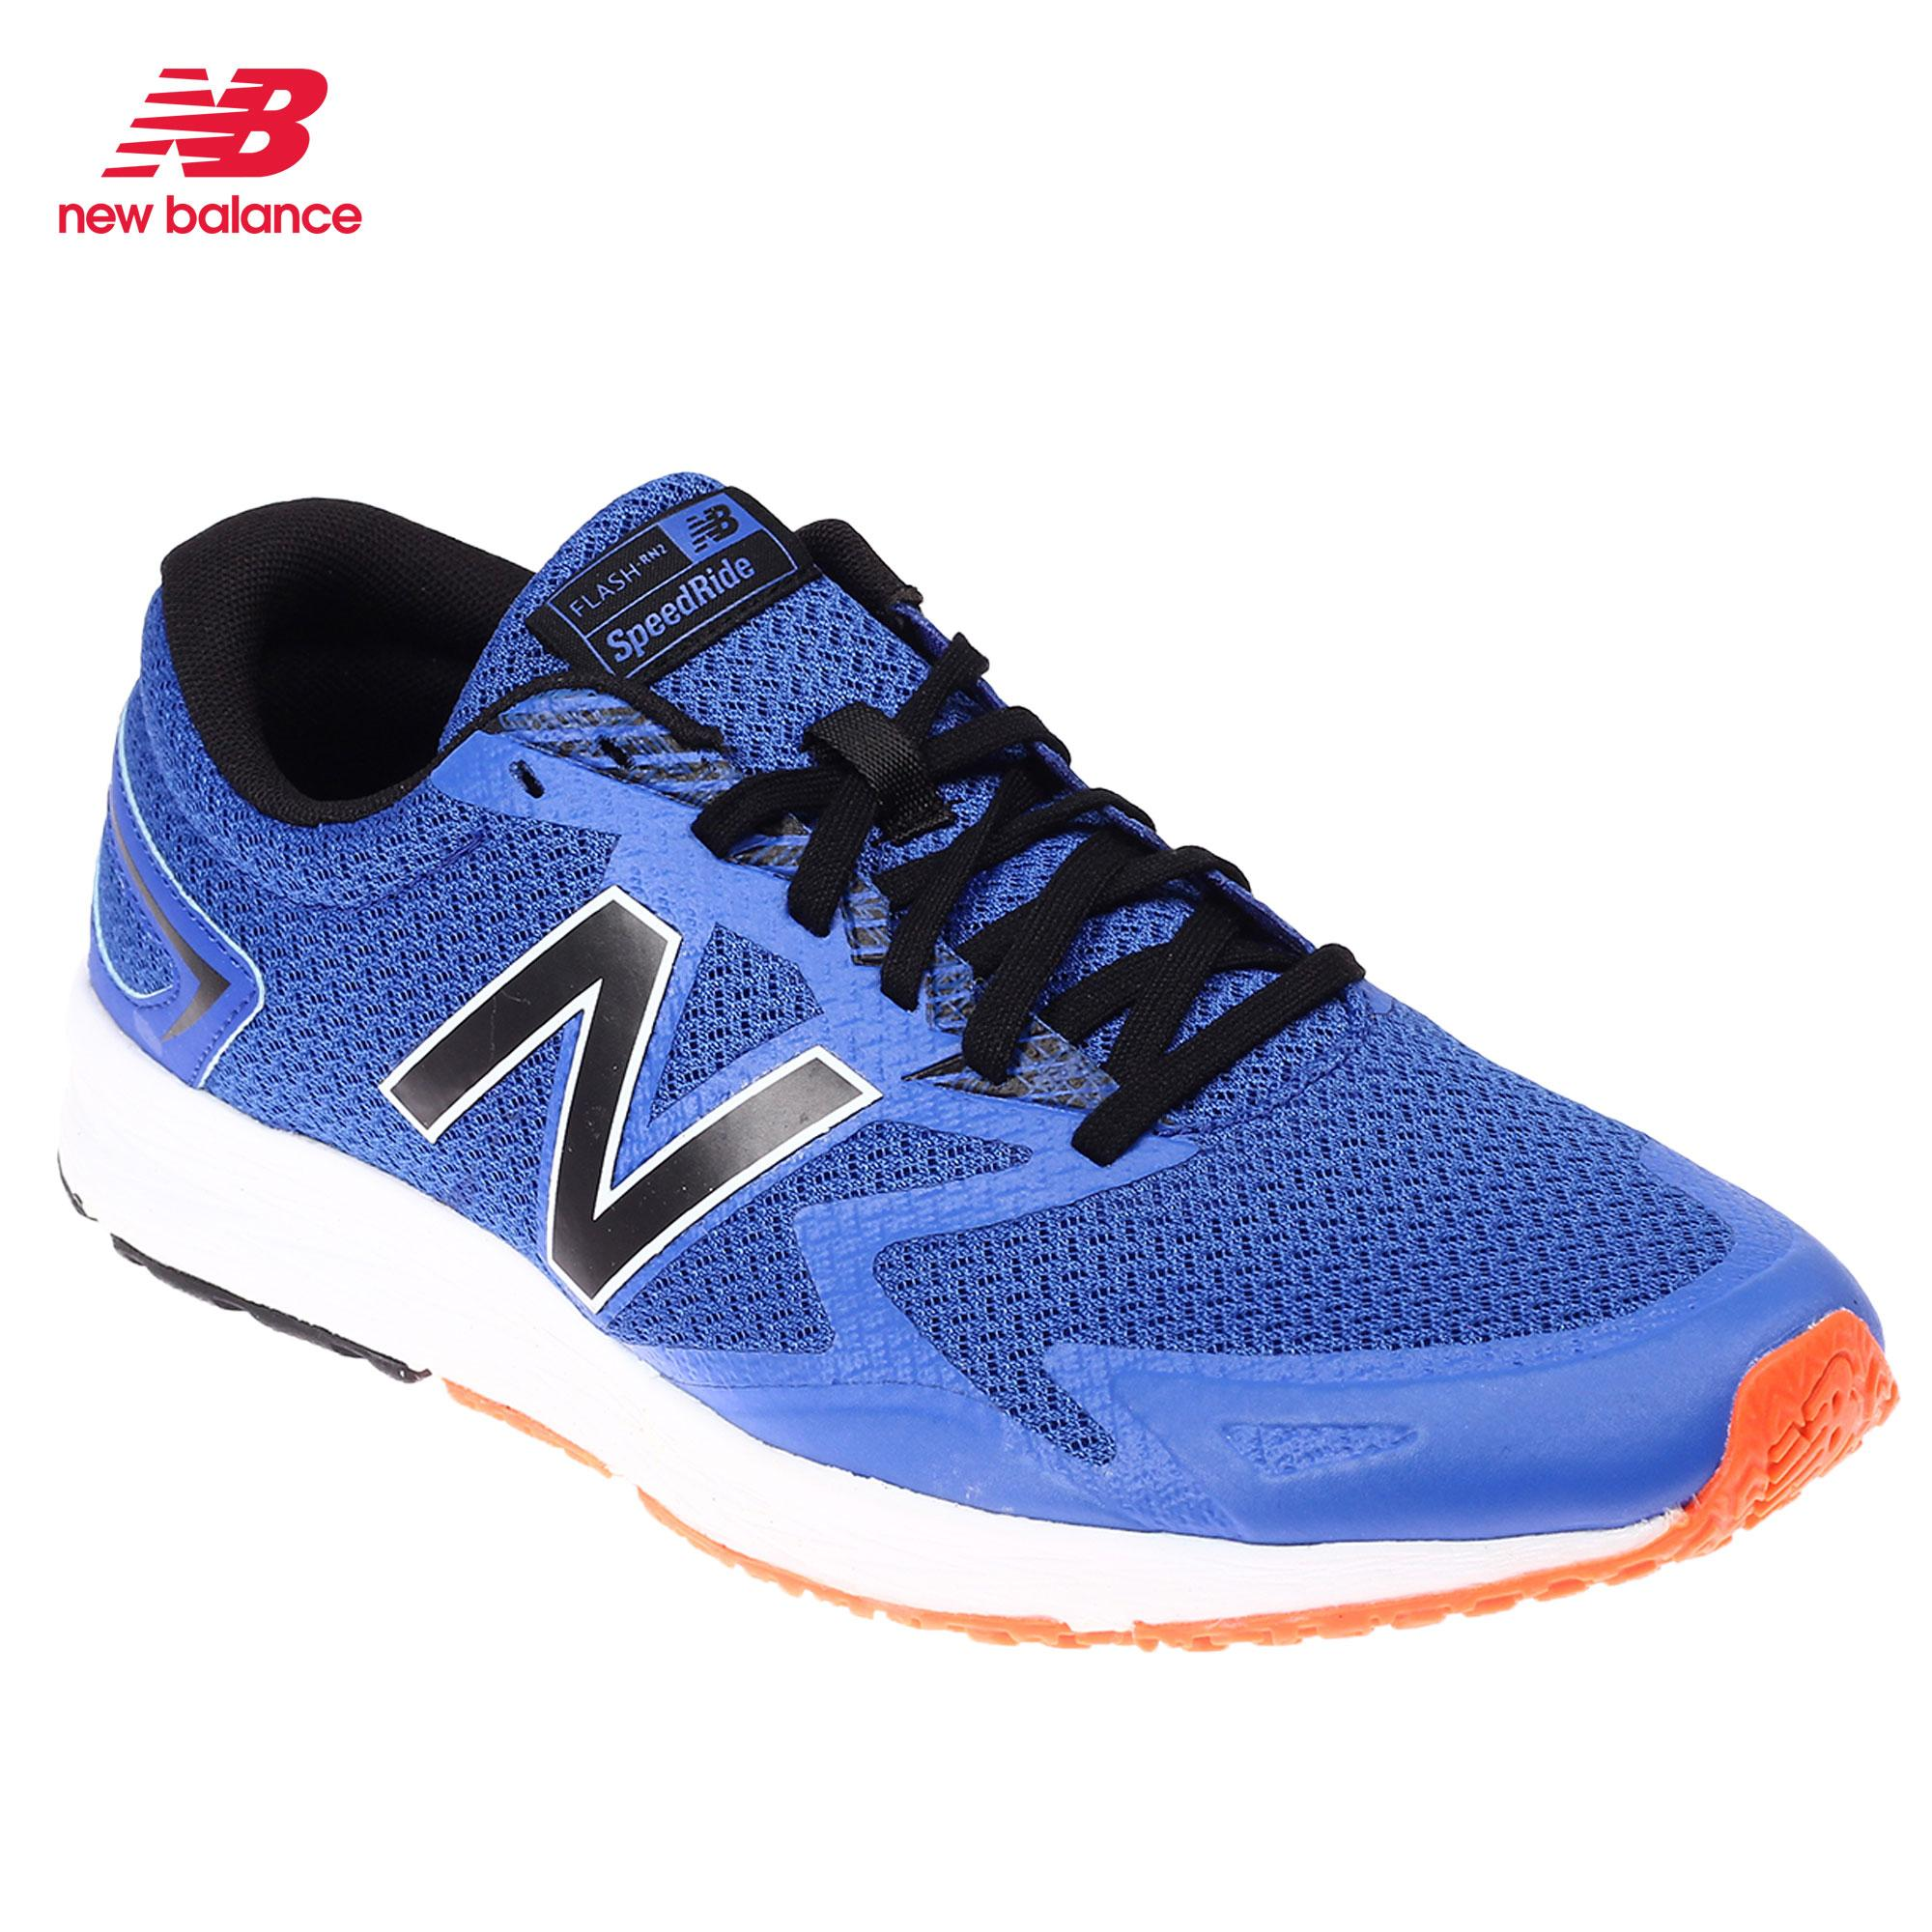 b8d6fd1a8 Running Shoes for Men for sale - Mens Running Shoes online brands ...